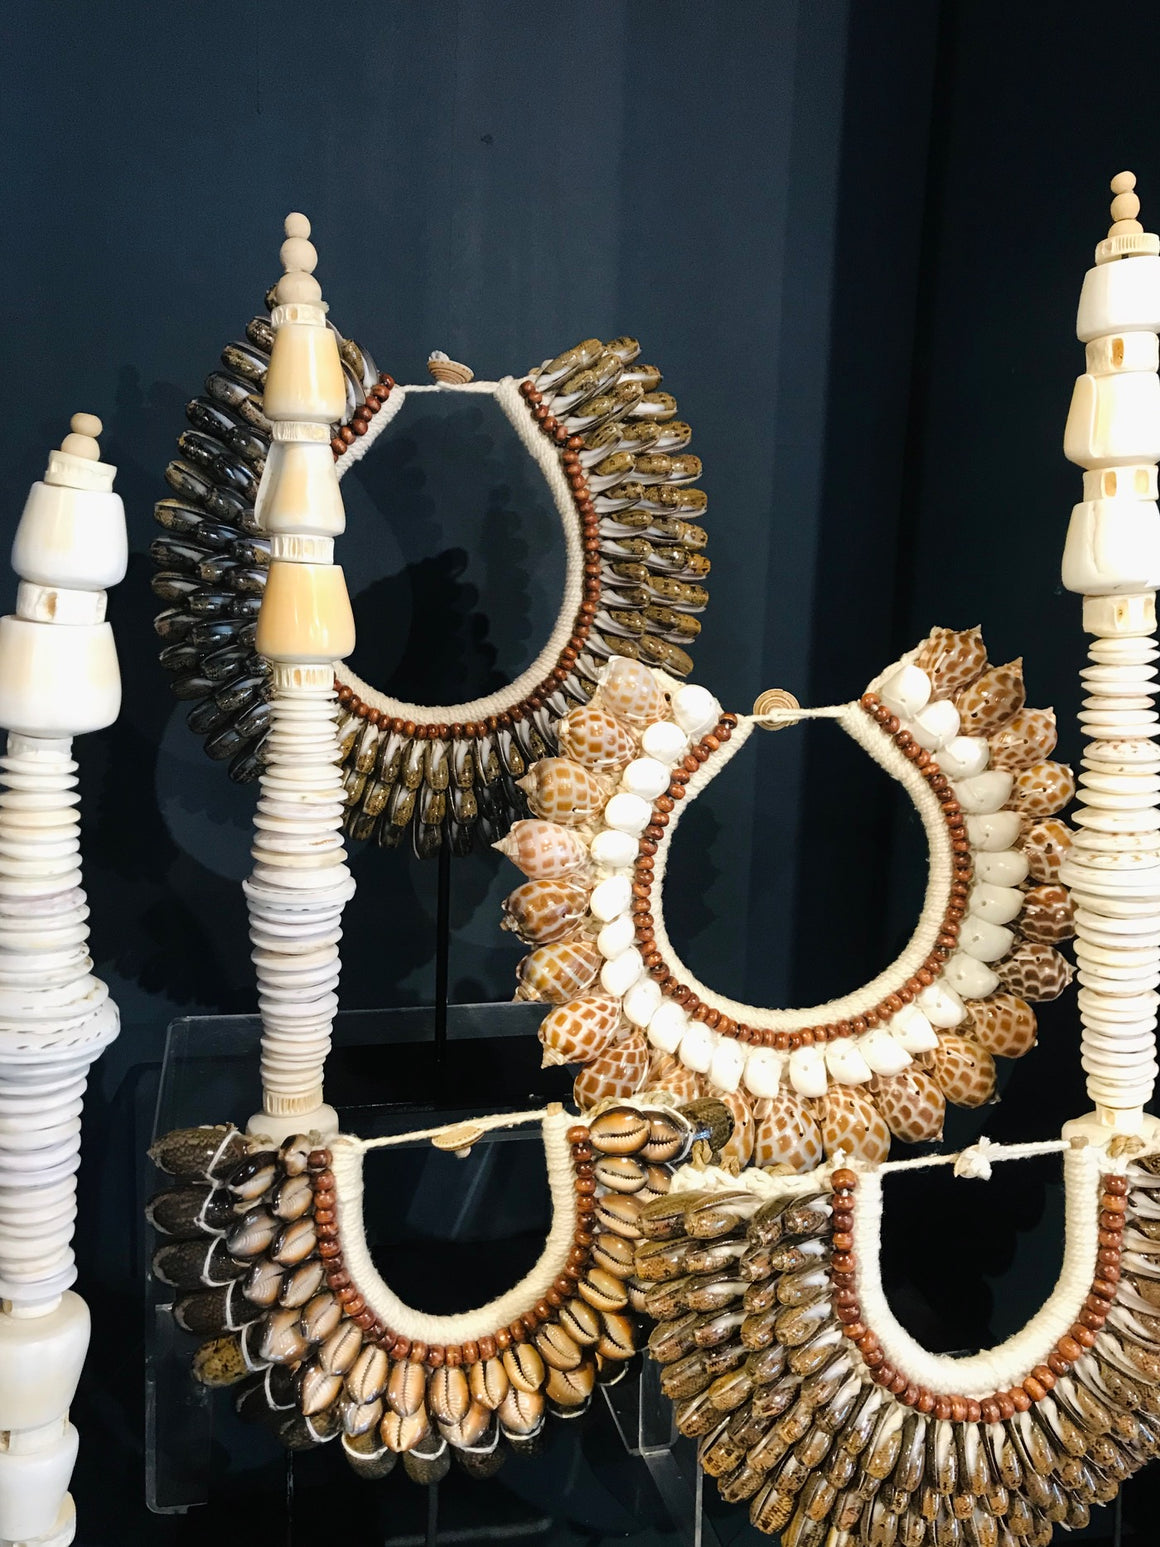 Decorative Shell Money Towers from Papua New Guinea